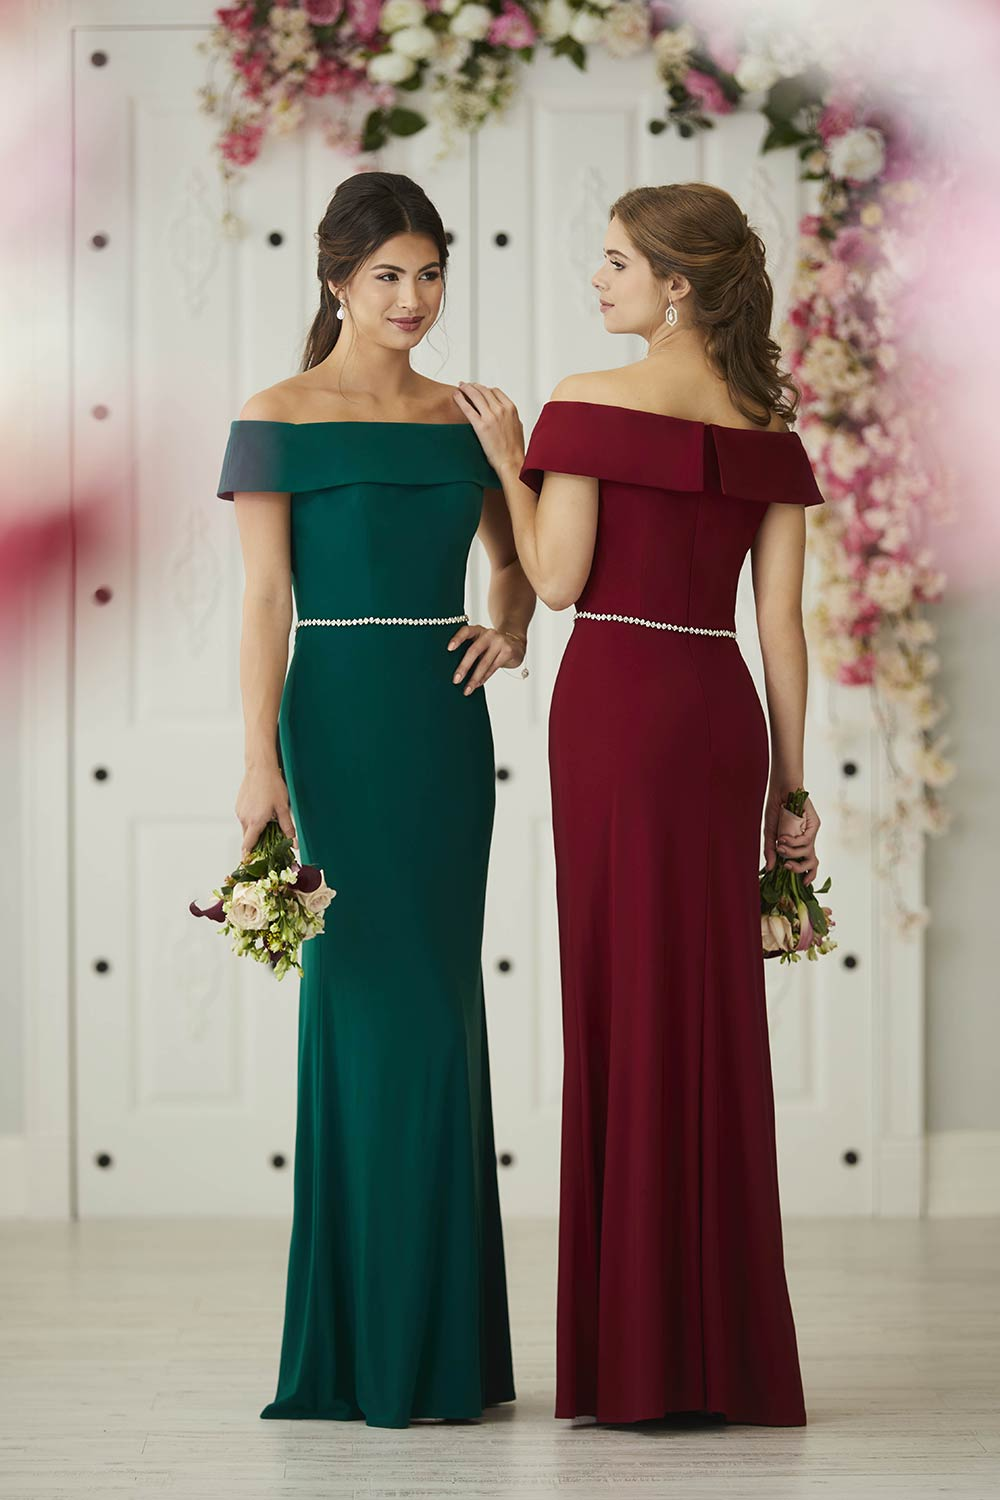 bridesmaid-dresses-jacquelin-bridals-canada-27307